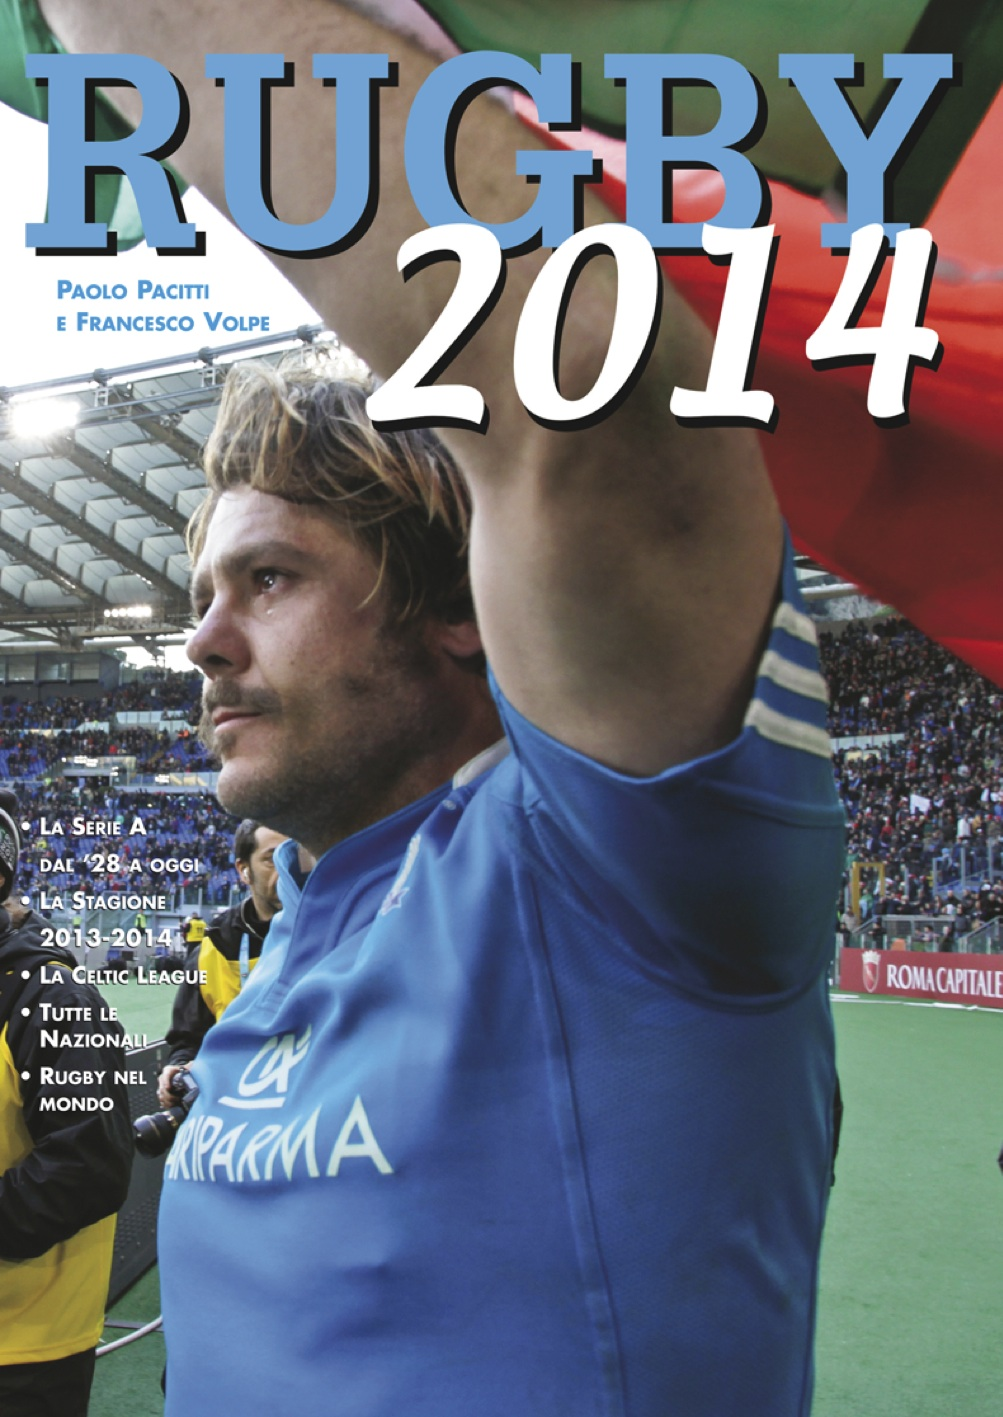 Rugby 2014 cover